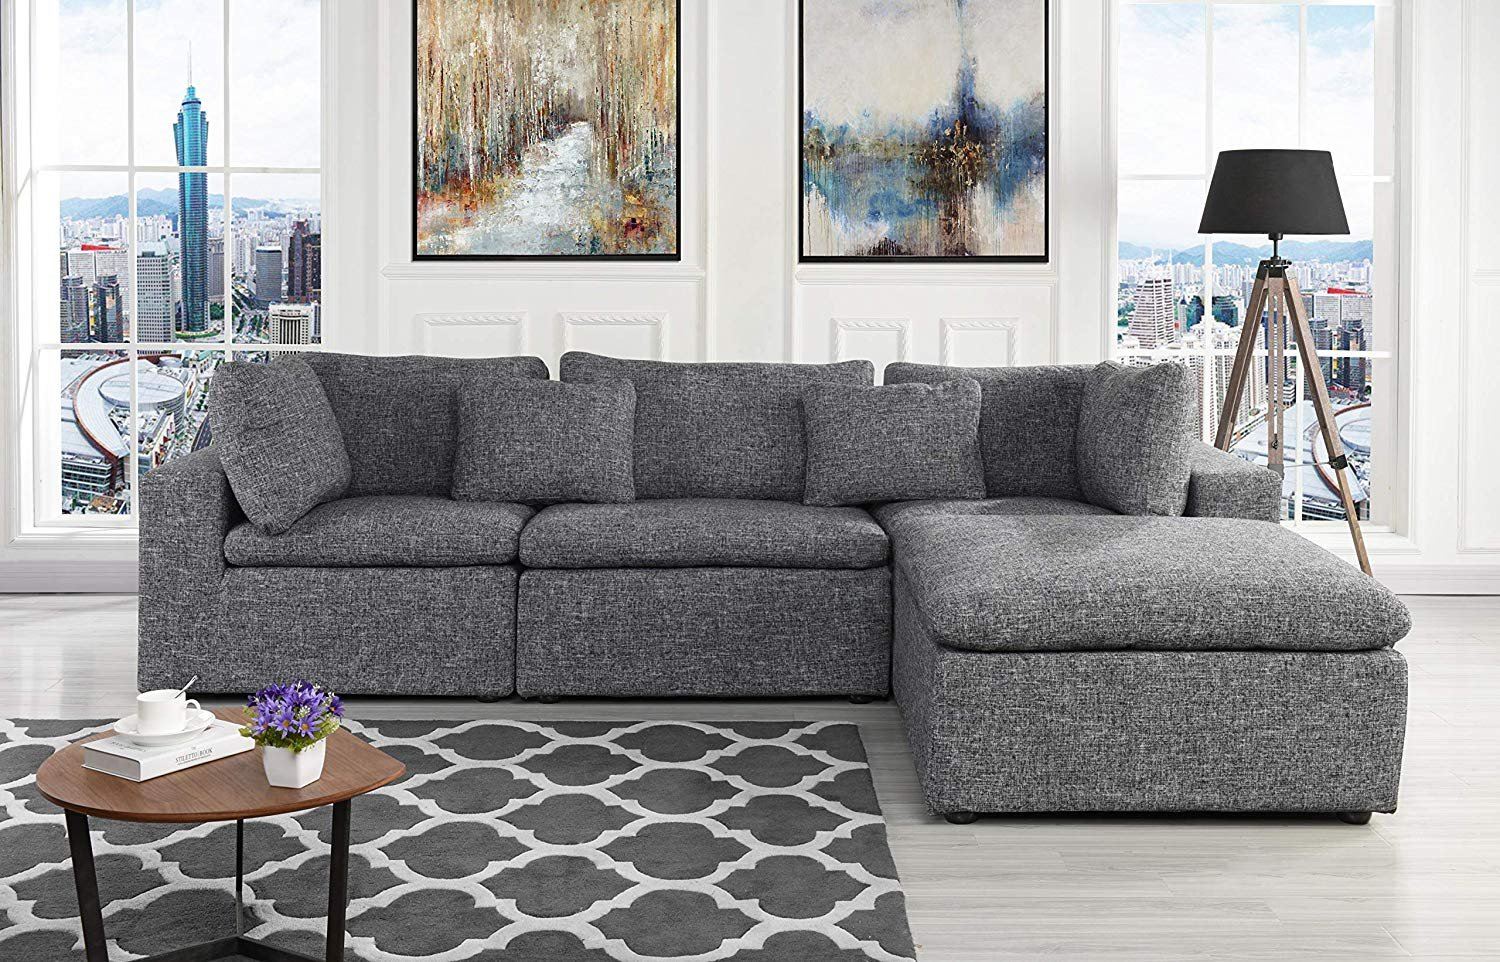 Large Linen Fabric Sectional Sofa, L Shape Couch With Wide Throughout Sectional Sofas With Oversized Ottoman (View 5 of 15)